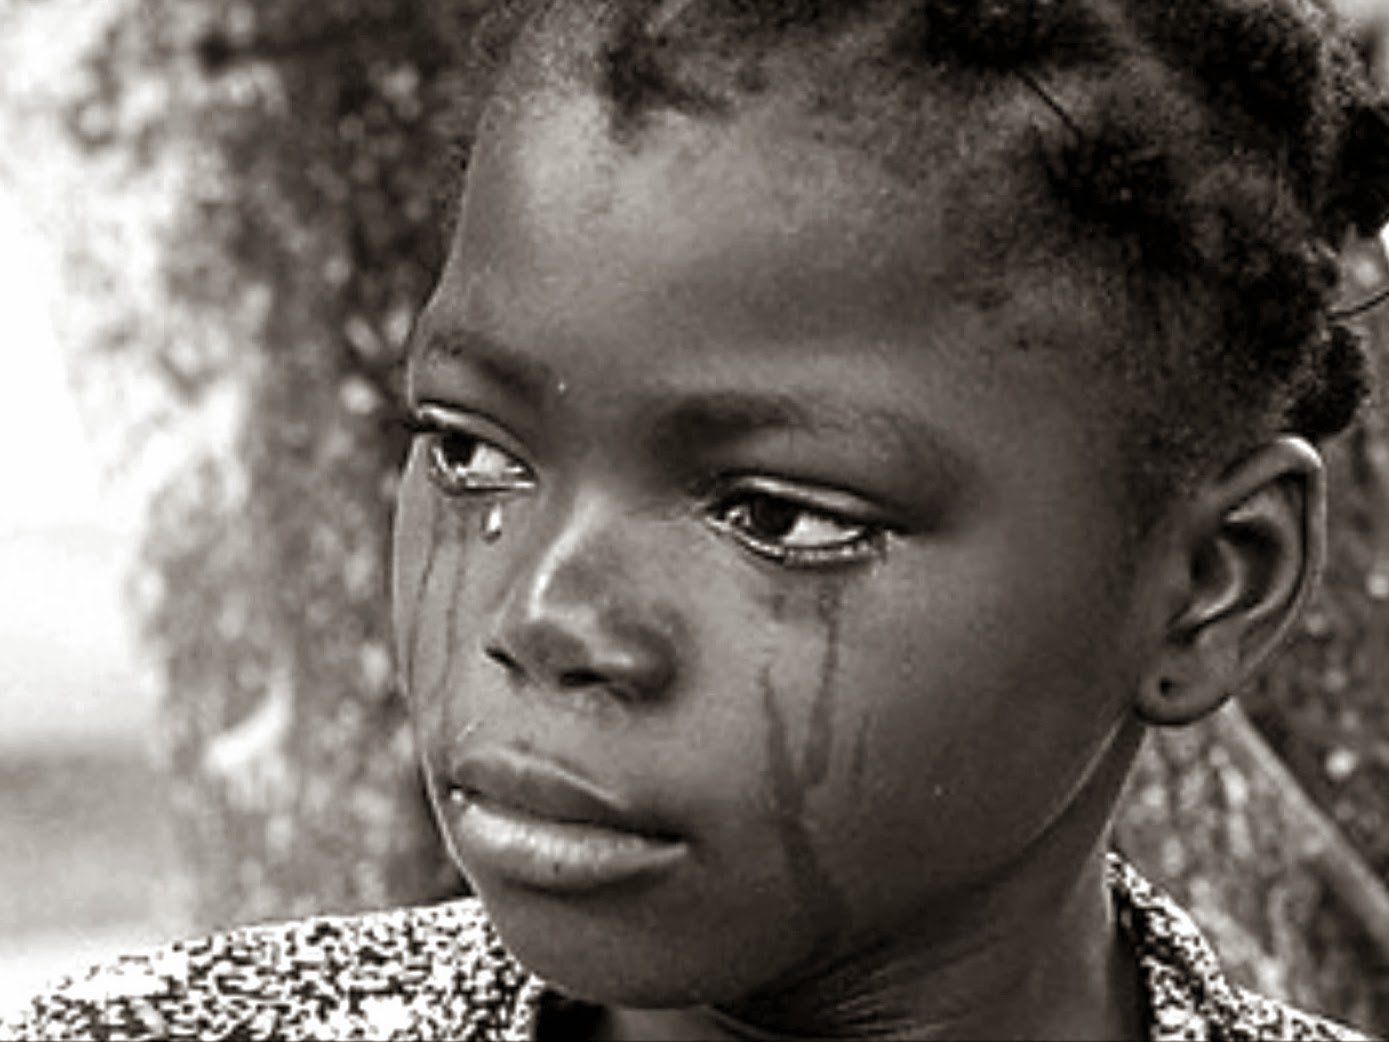 7 PAINFUL REASONS WHY AFRICANS ARE POOR